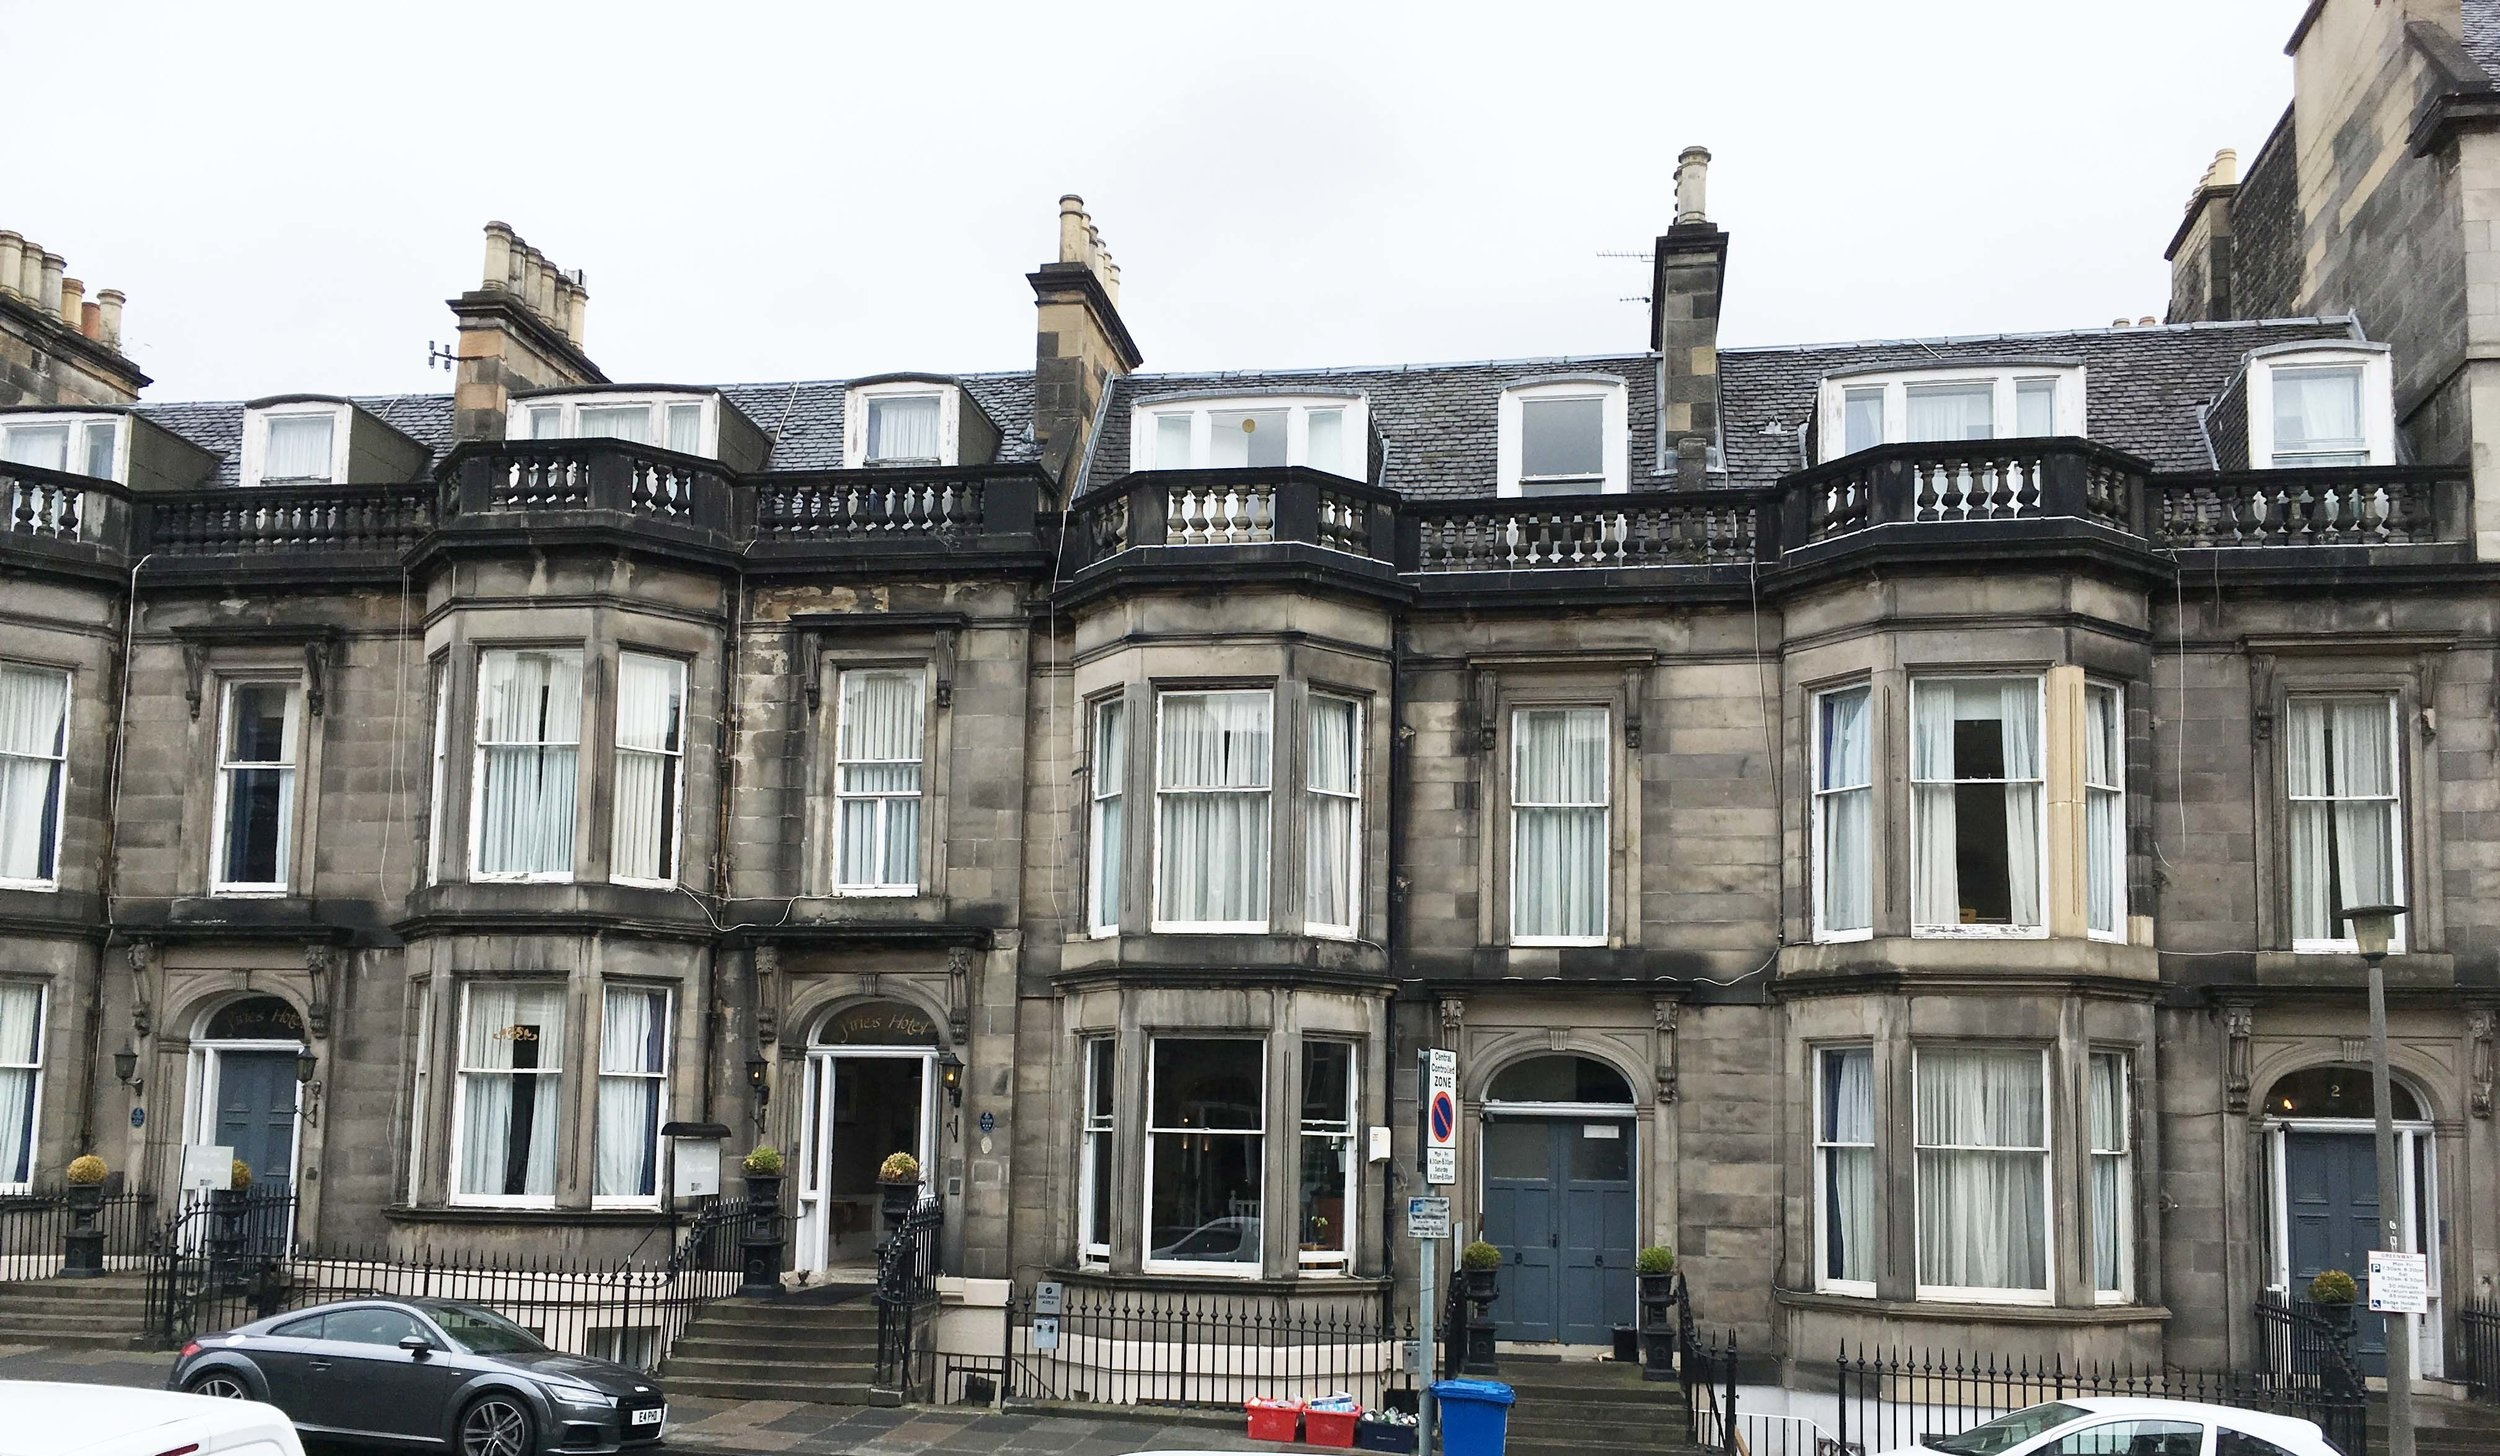 On the drawing board - Piries Hotel -  Blog / Sept 2018  The Splendid Hospitality Group wish to bring about necessary change and improvements to the existing Piries Hotel on 2-8 Coates Gardens, in the West End of Edinburgh.